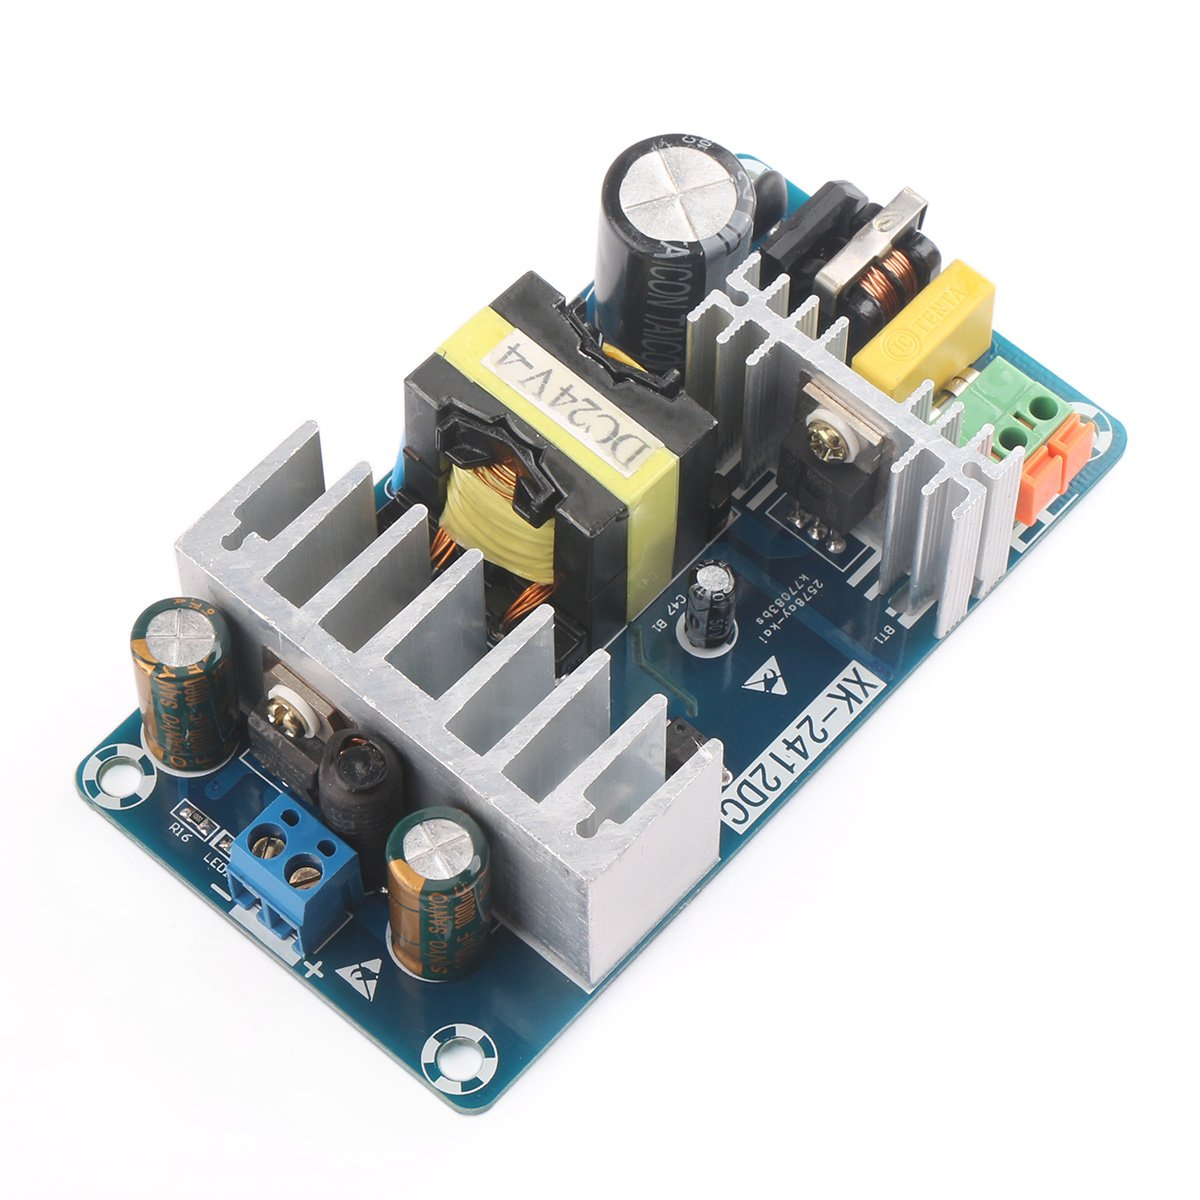 Drok Ac To Dc 24v Power Converter Module 4a 100w Sale 12vdc 5vdc Circuit Switching Supply Board 85 265v Variable Input With Indicator Industrial Grade Switch